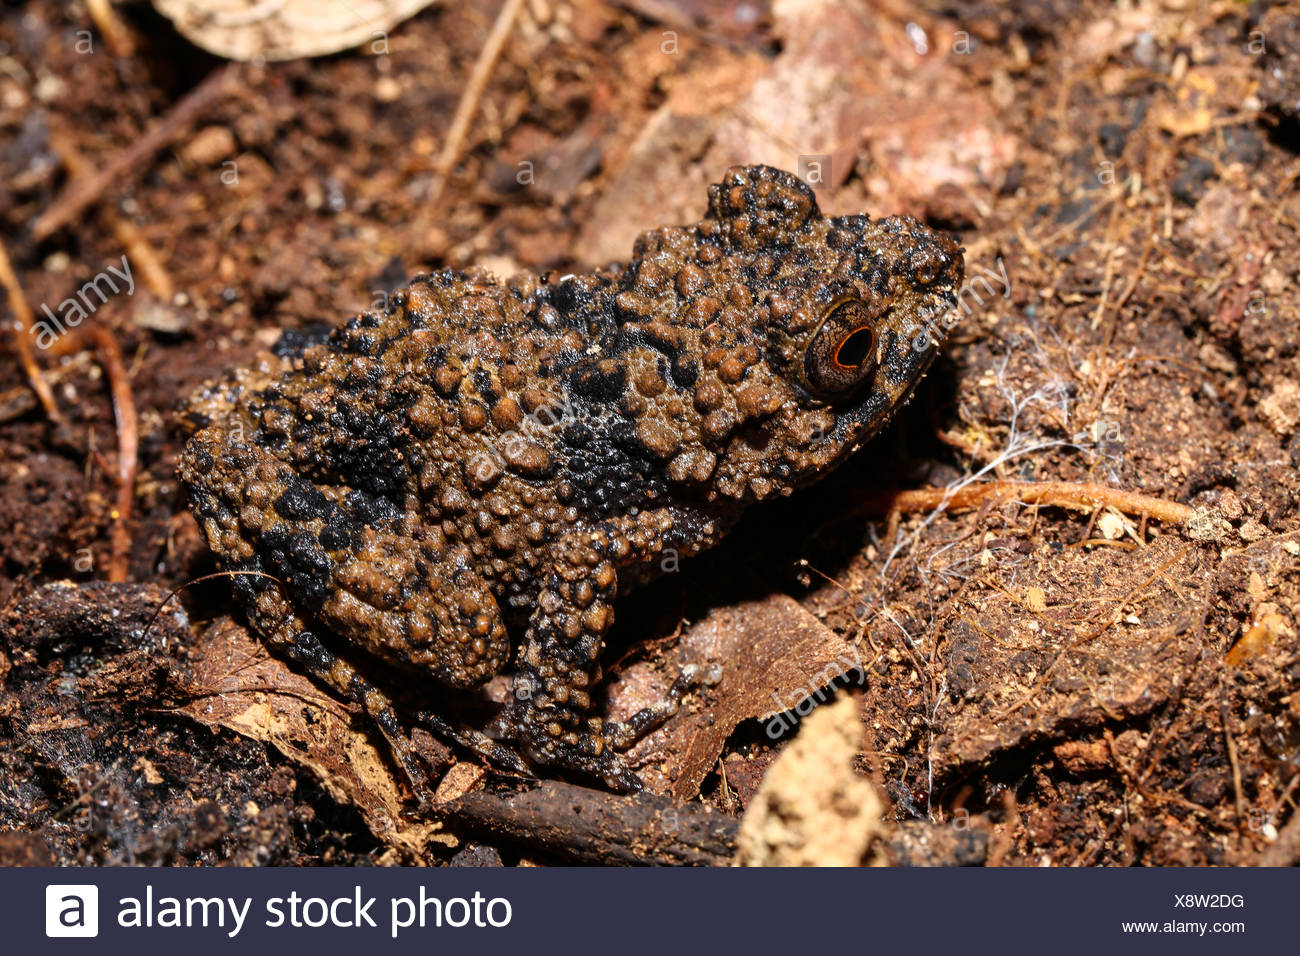 Boettger's grainy frog (Gephyromantis horridus) sitting camouflaged on the ground, Amber Mountain National Park, Diana - Stock Image